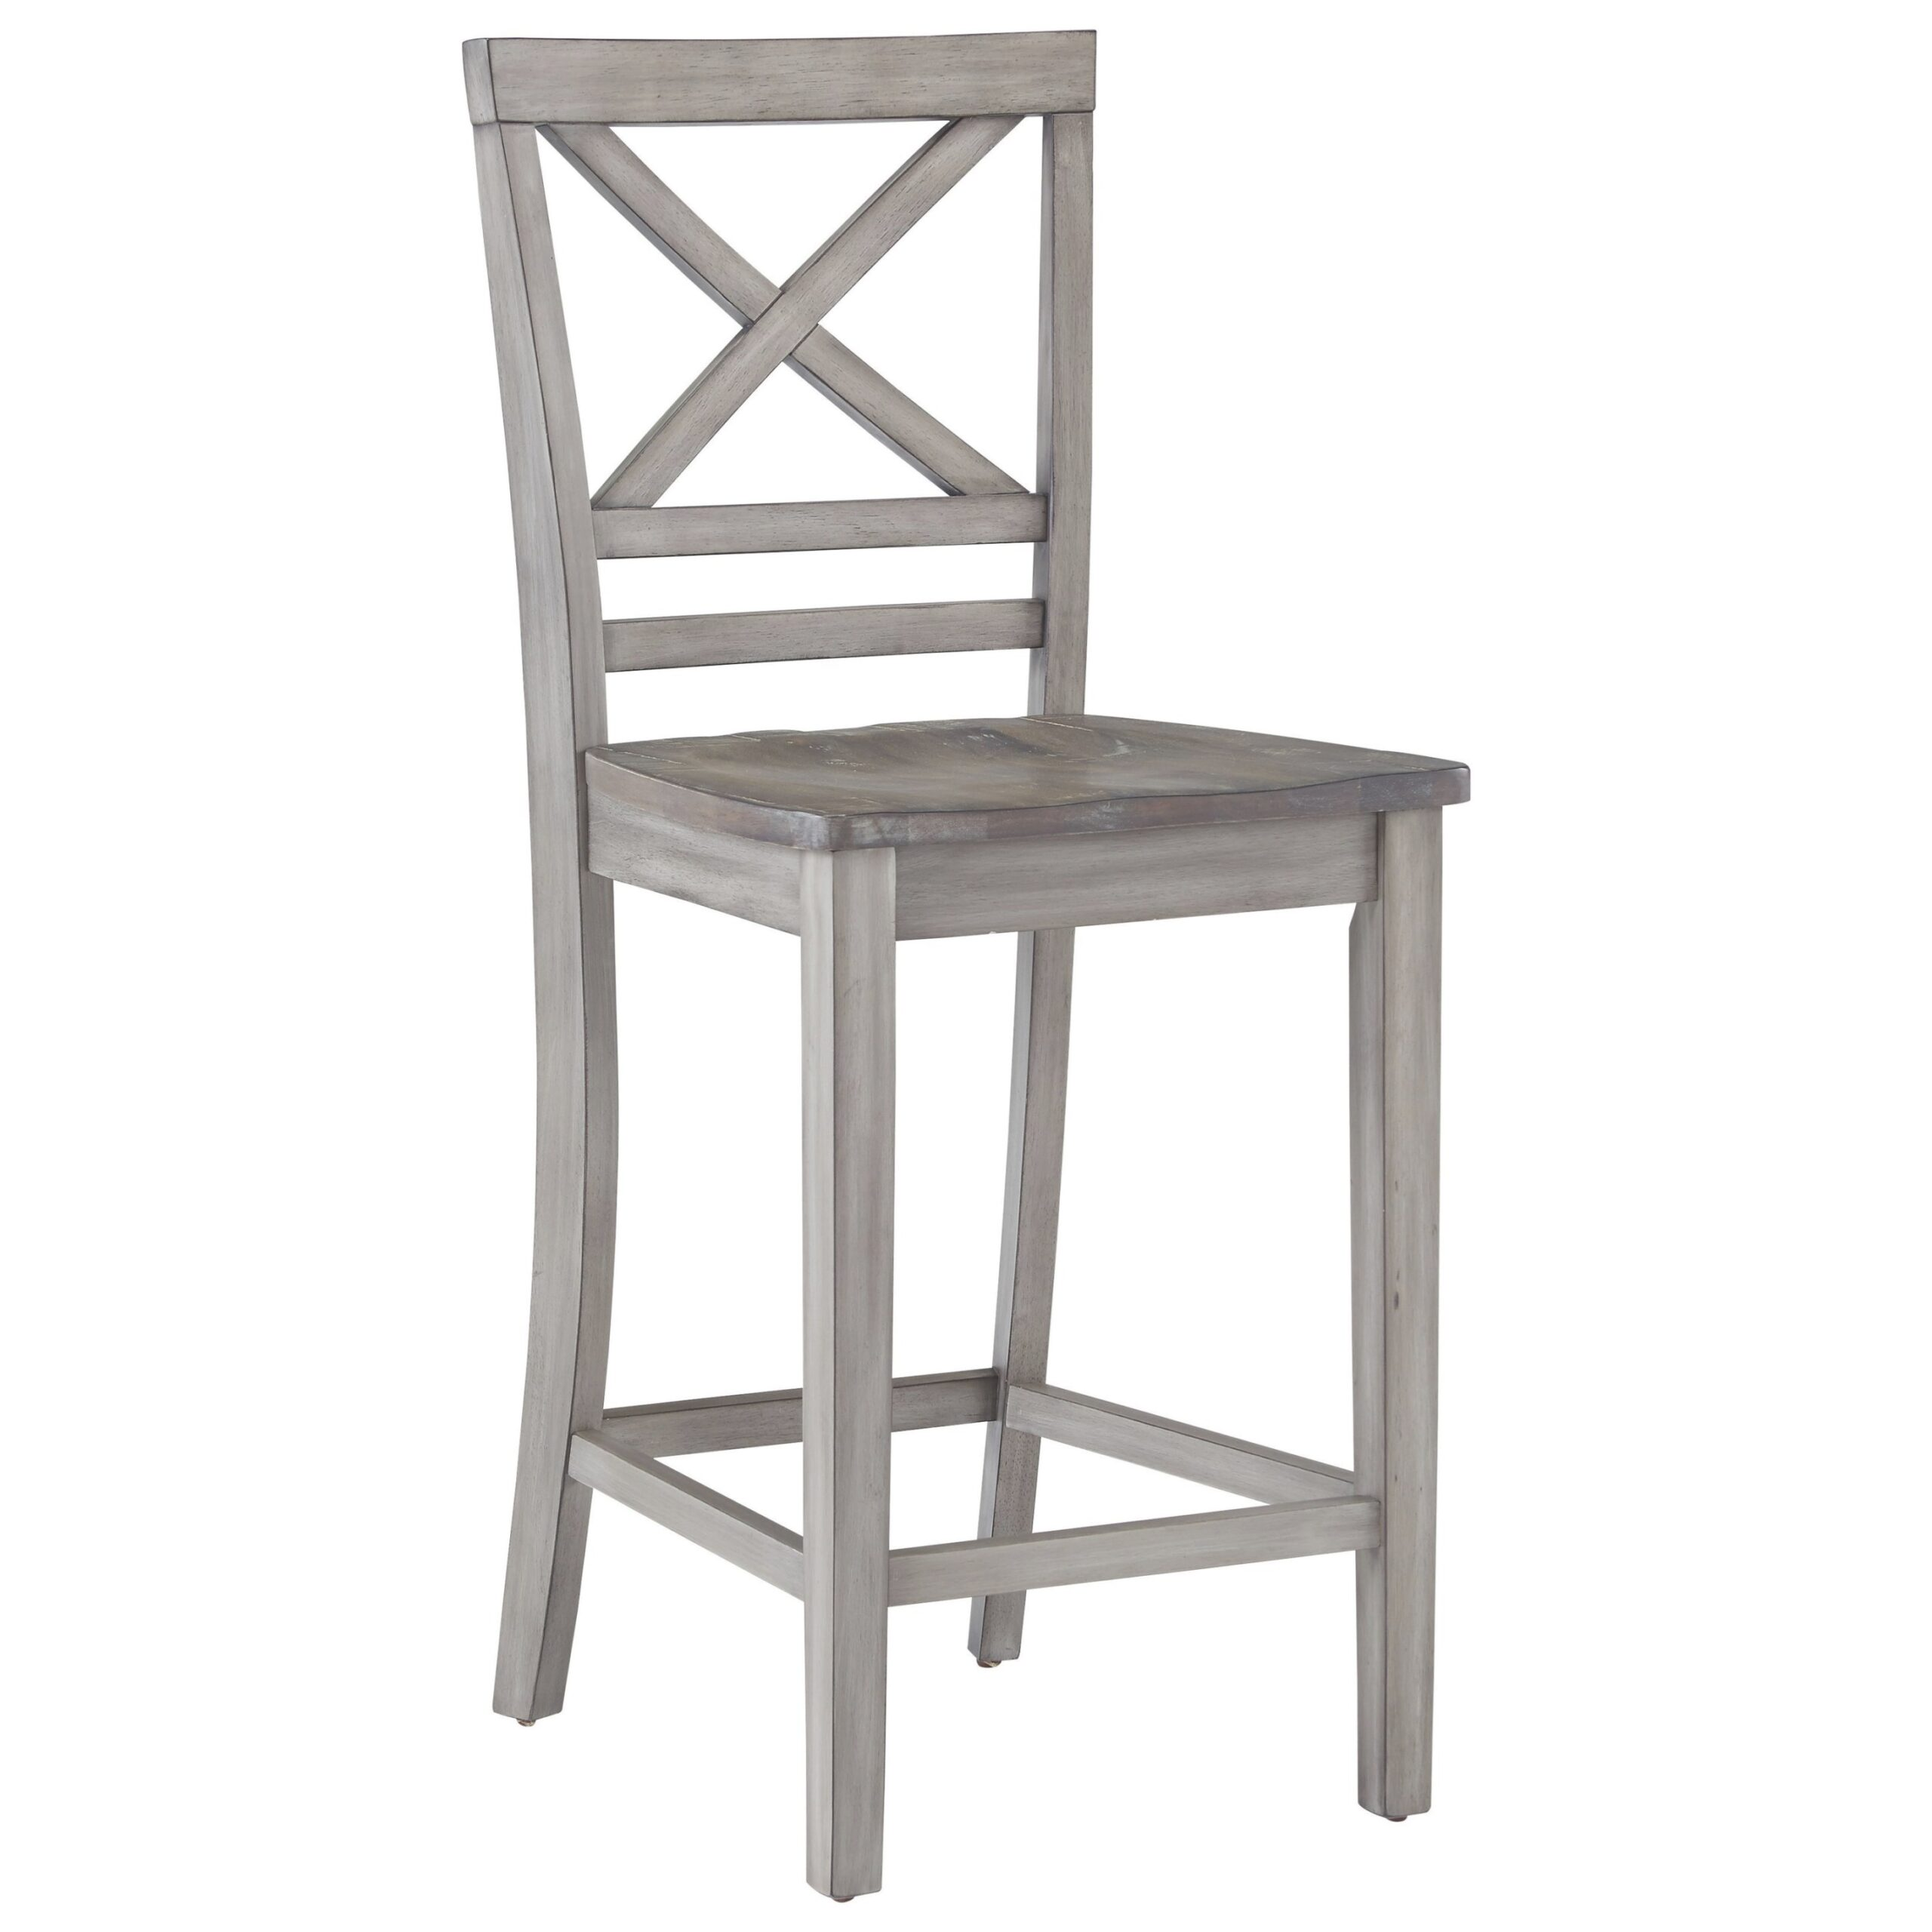 Standard Furniture Fairhaven Rustic Counter Height pertaining to Counter Height Bar Stools